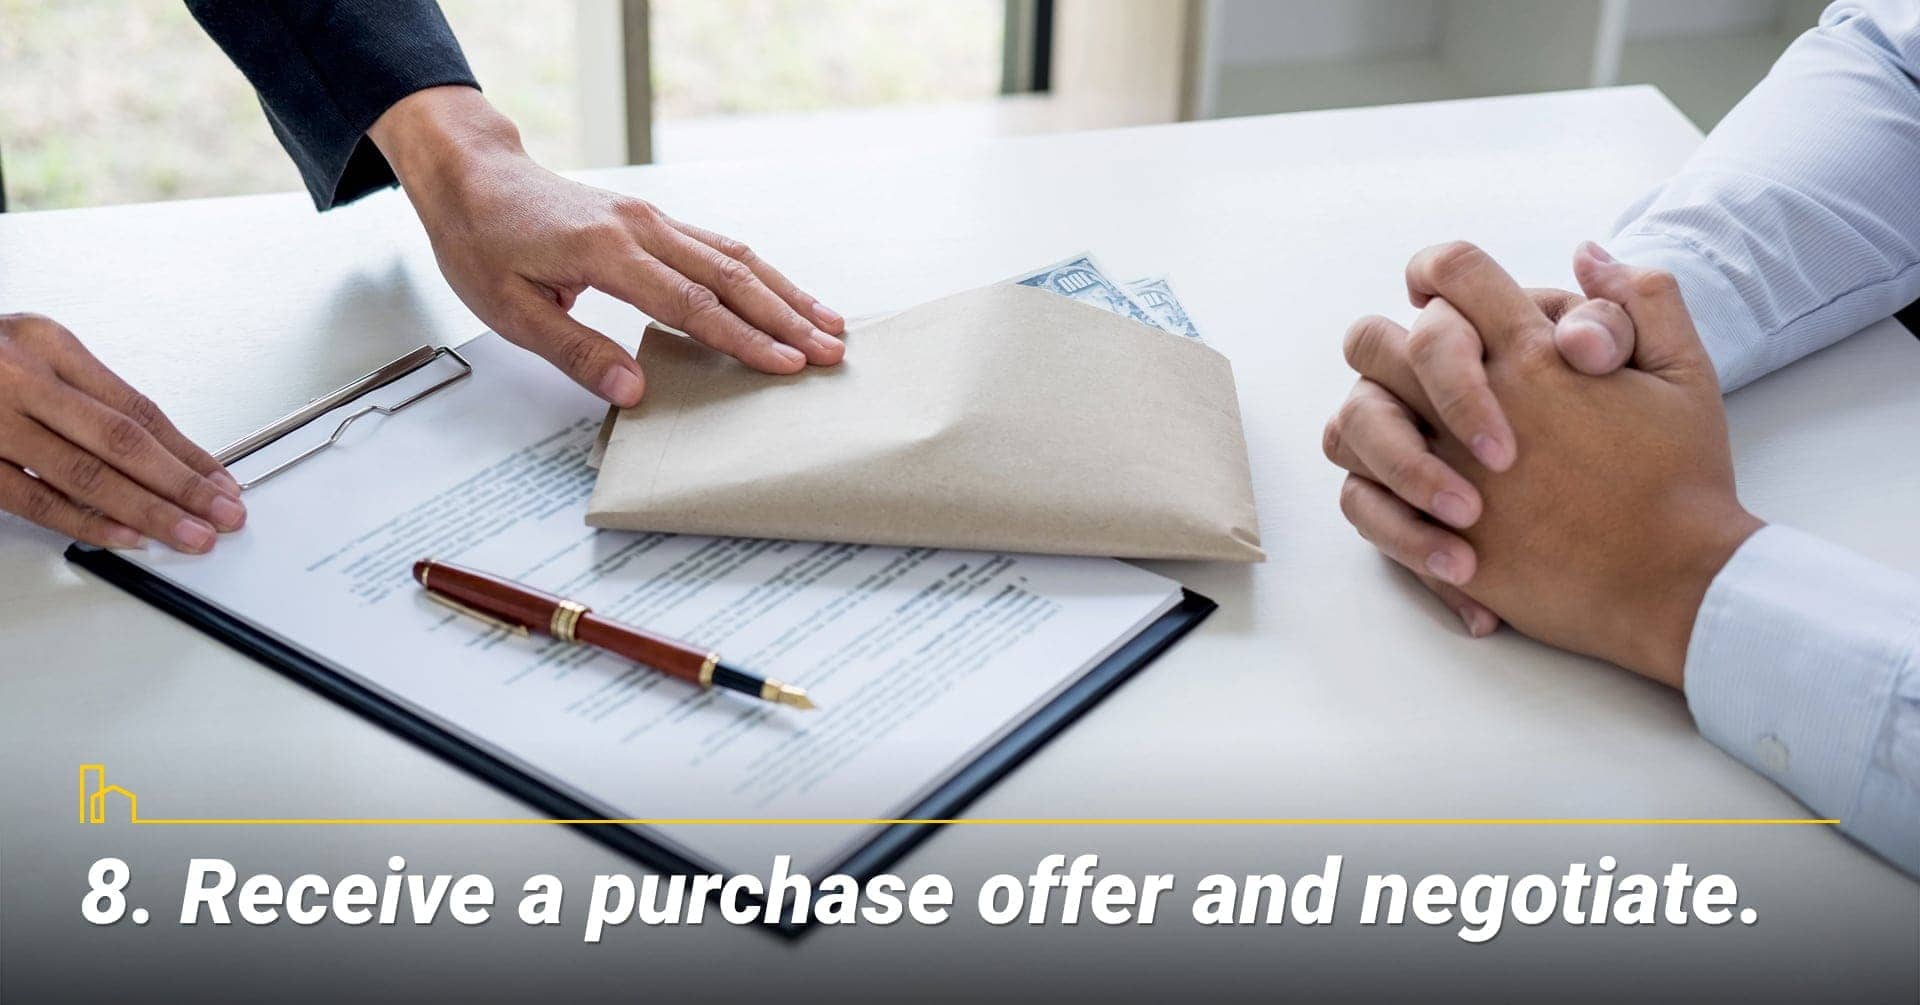 Receive a purchase offer and negotiate